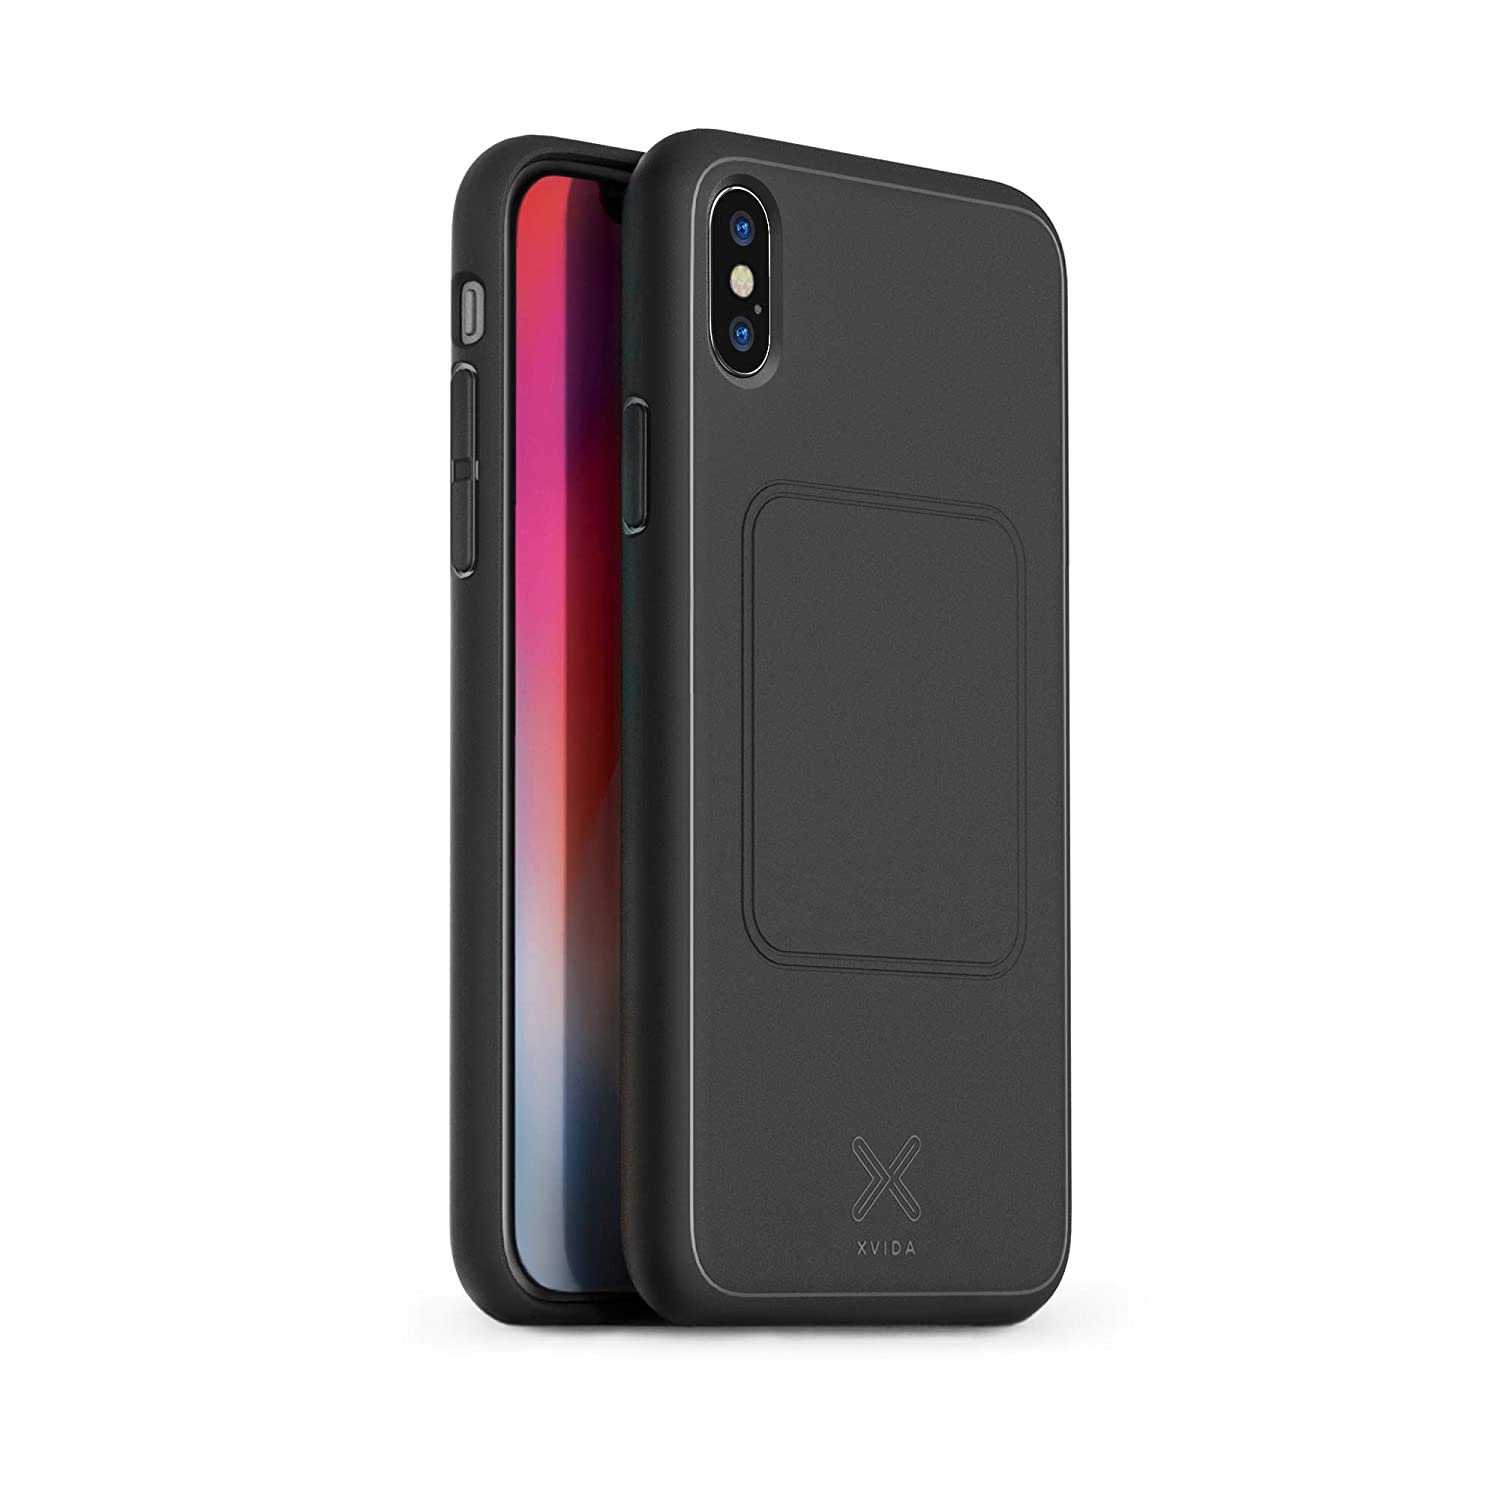 detailed look 8d557 237eb XVIDA iPhone X Magnetic Charging Case - Black